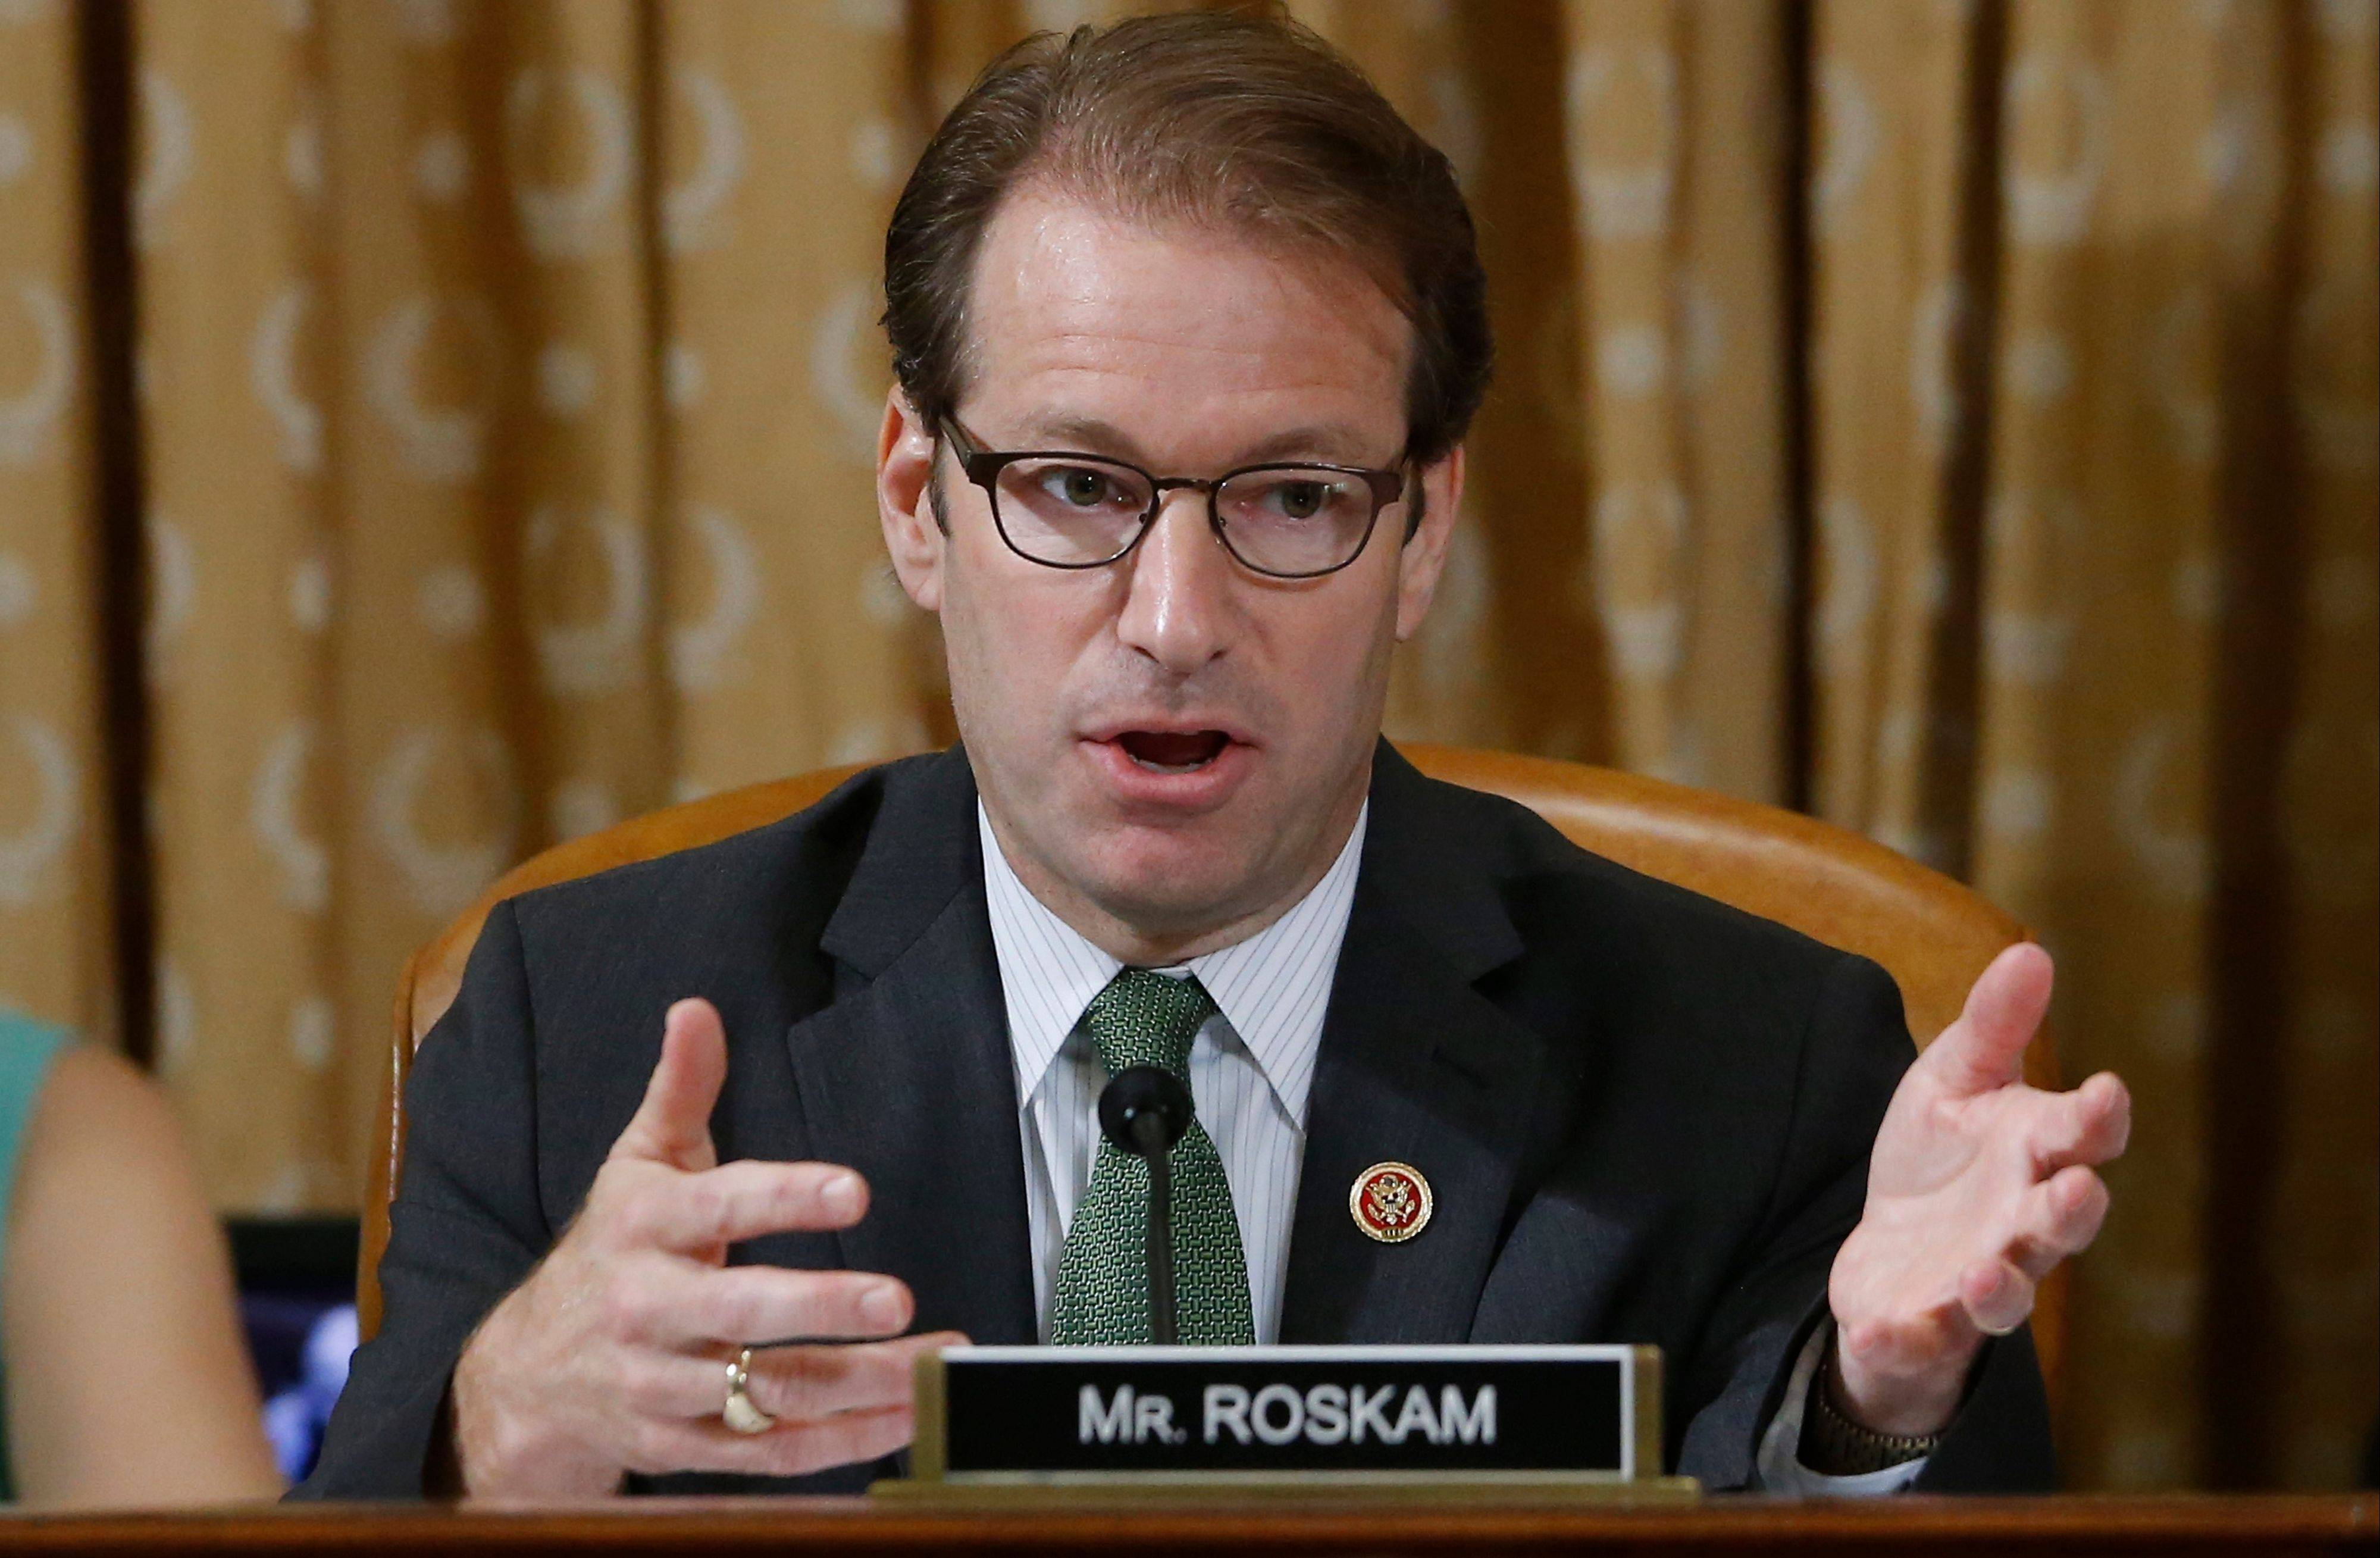 U.S. Rep. Peter Roskam is being investigated by the House Committee on Ethics over a $25,000 university-funded trip he took to Taiwan with his wife.